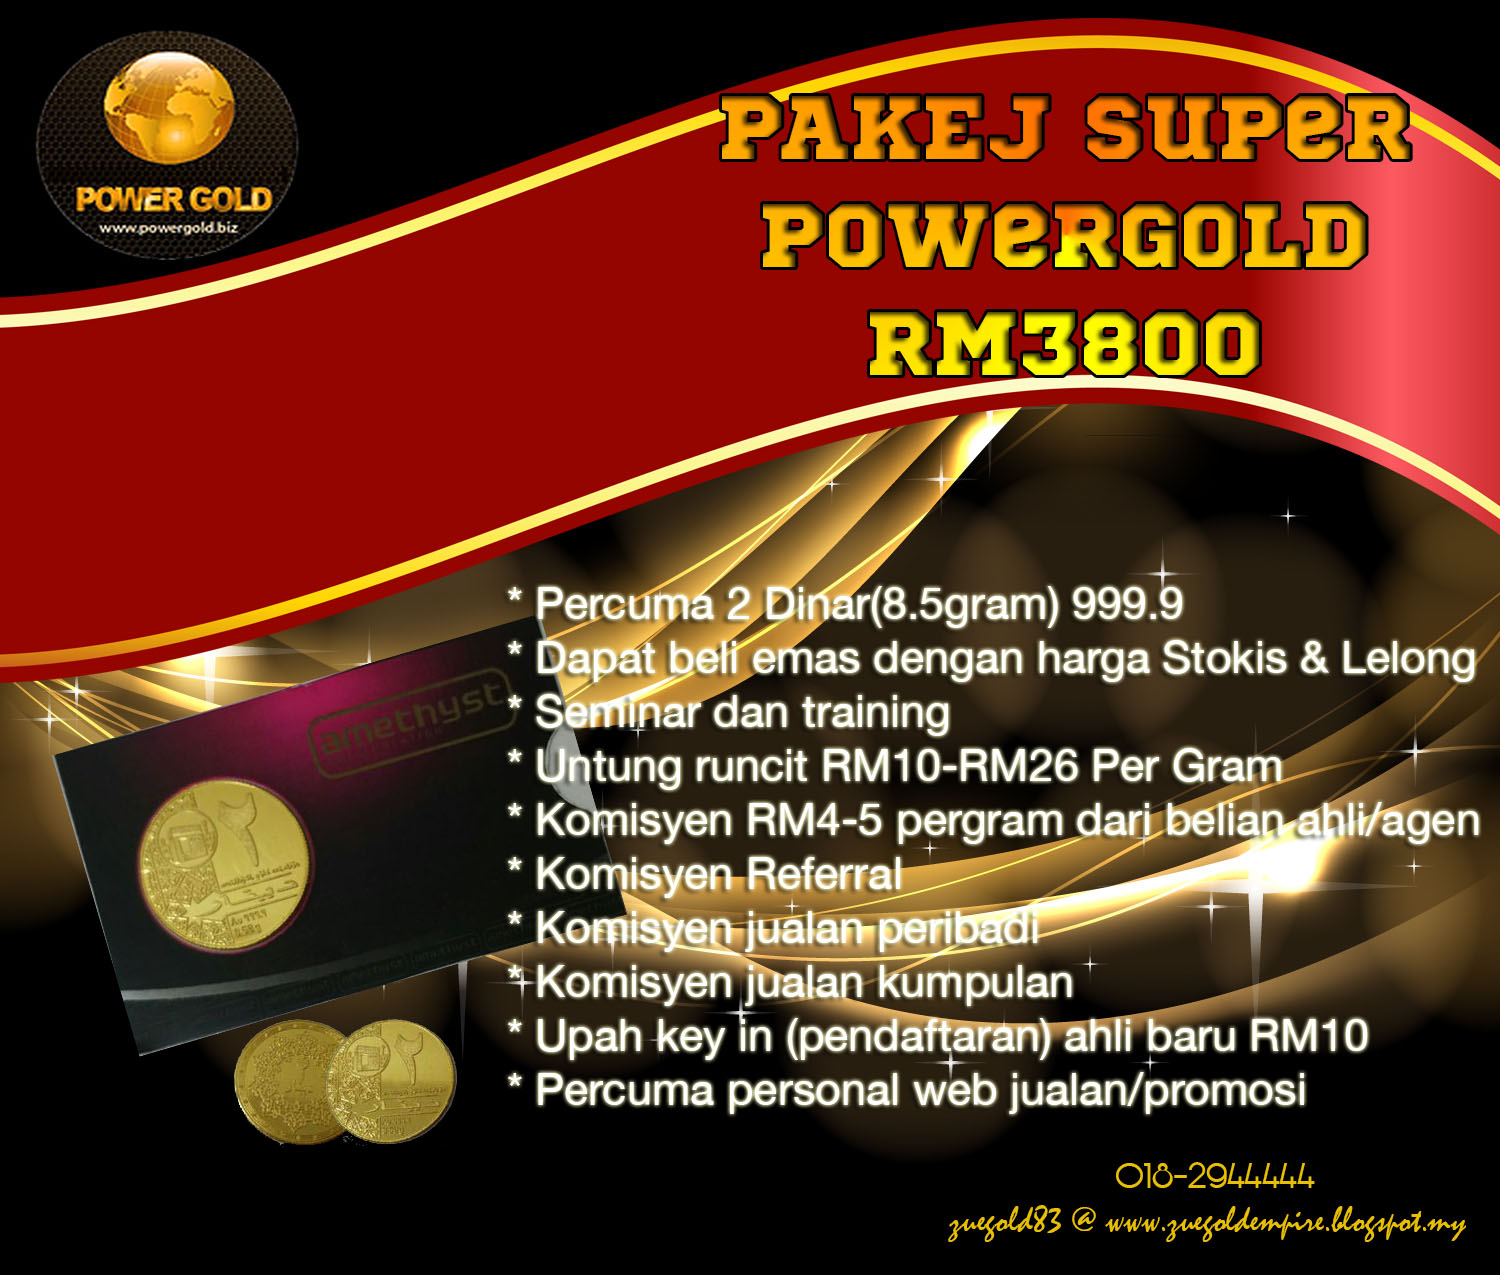 Powergold key generator